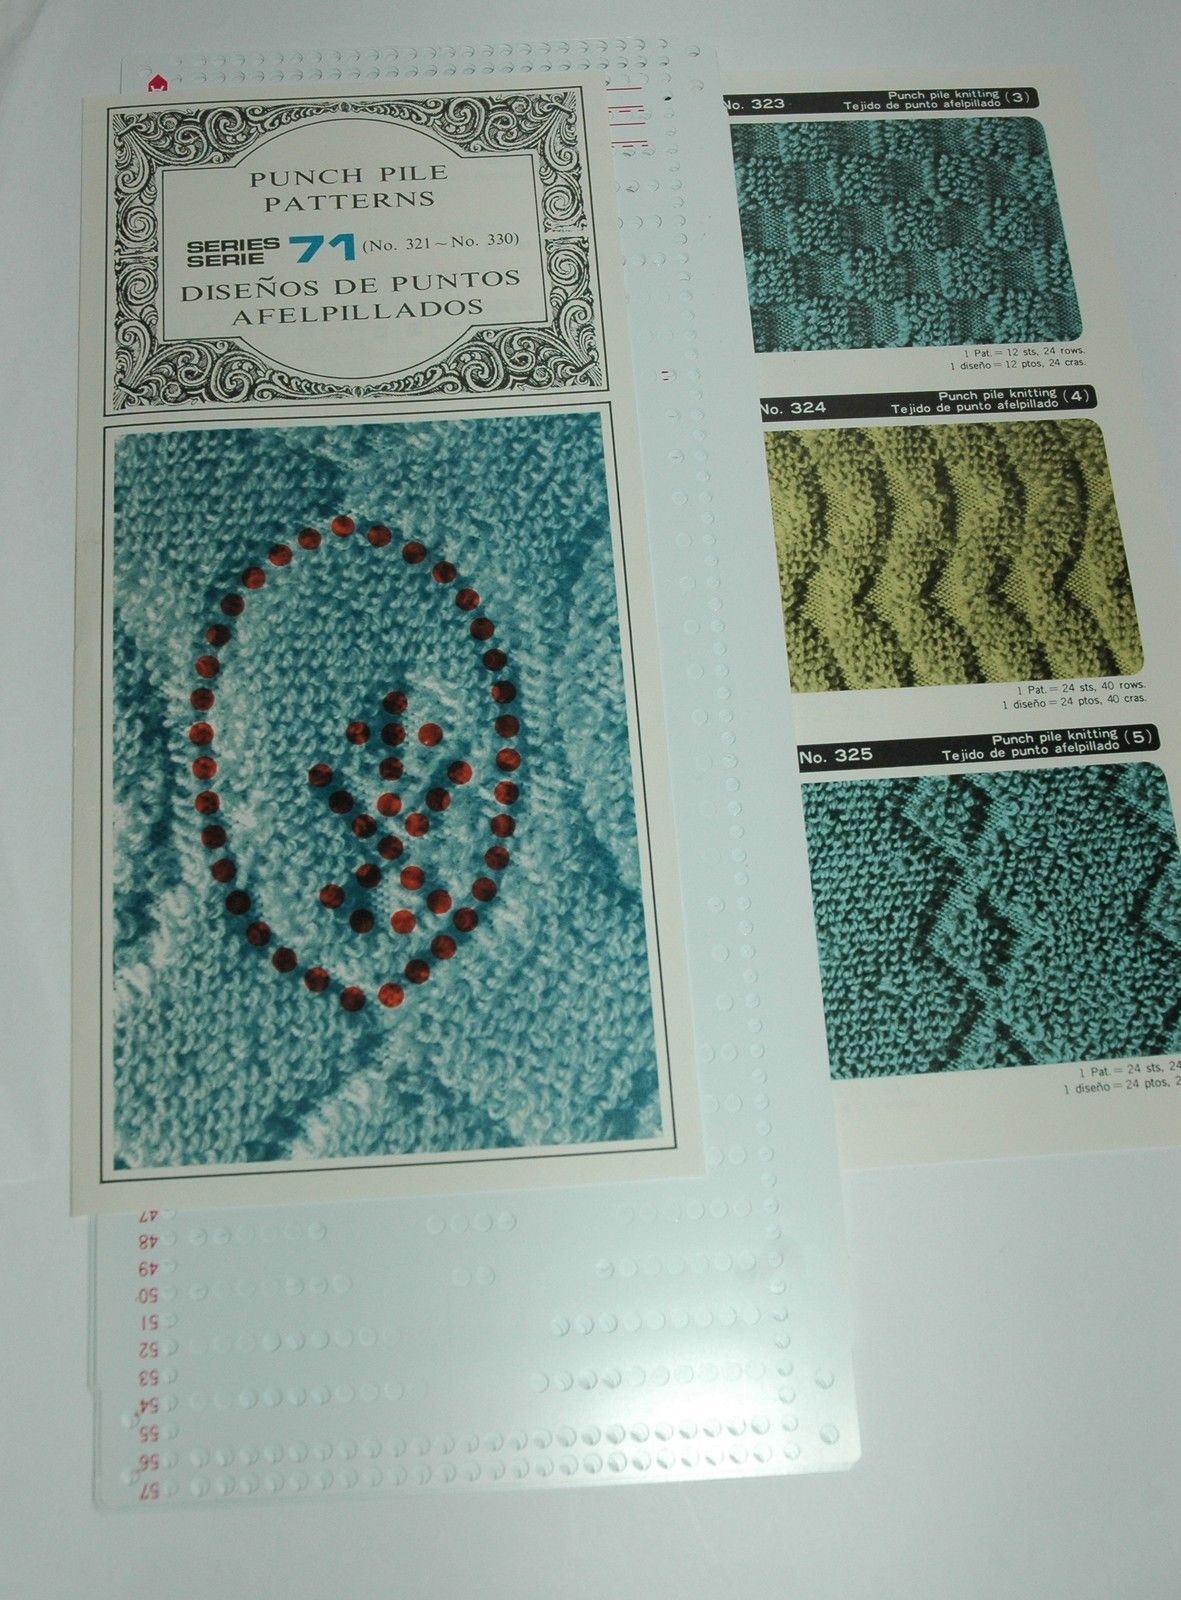 Knitting machine accessoriesspares pre punched pattern card sets for knitting machine ribbers punch pile patterns bankloansurffo Images